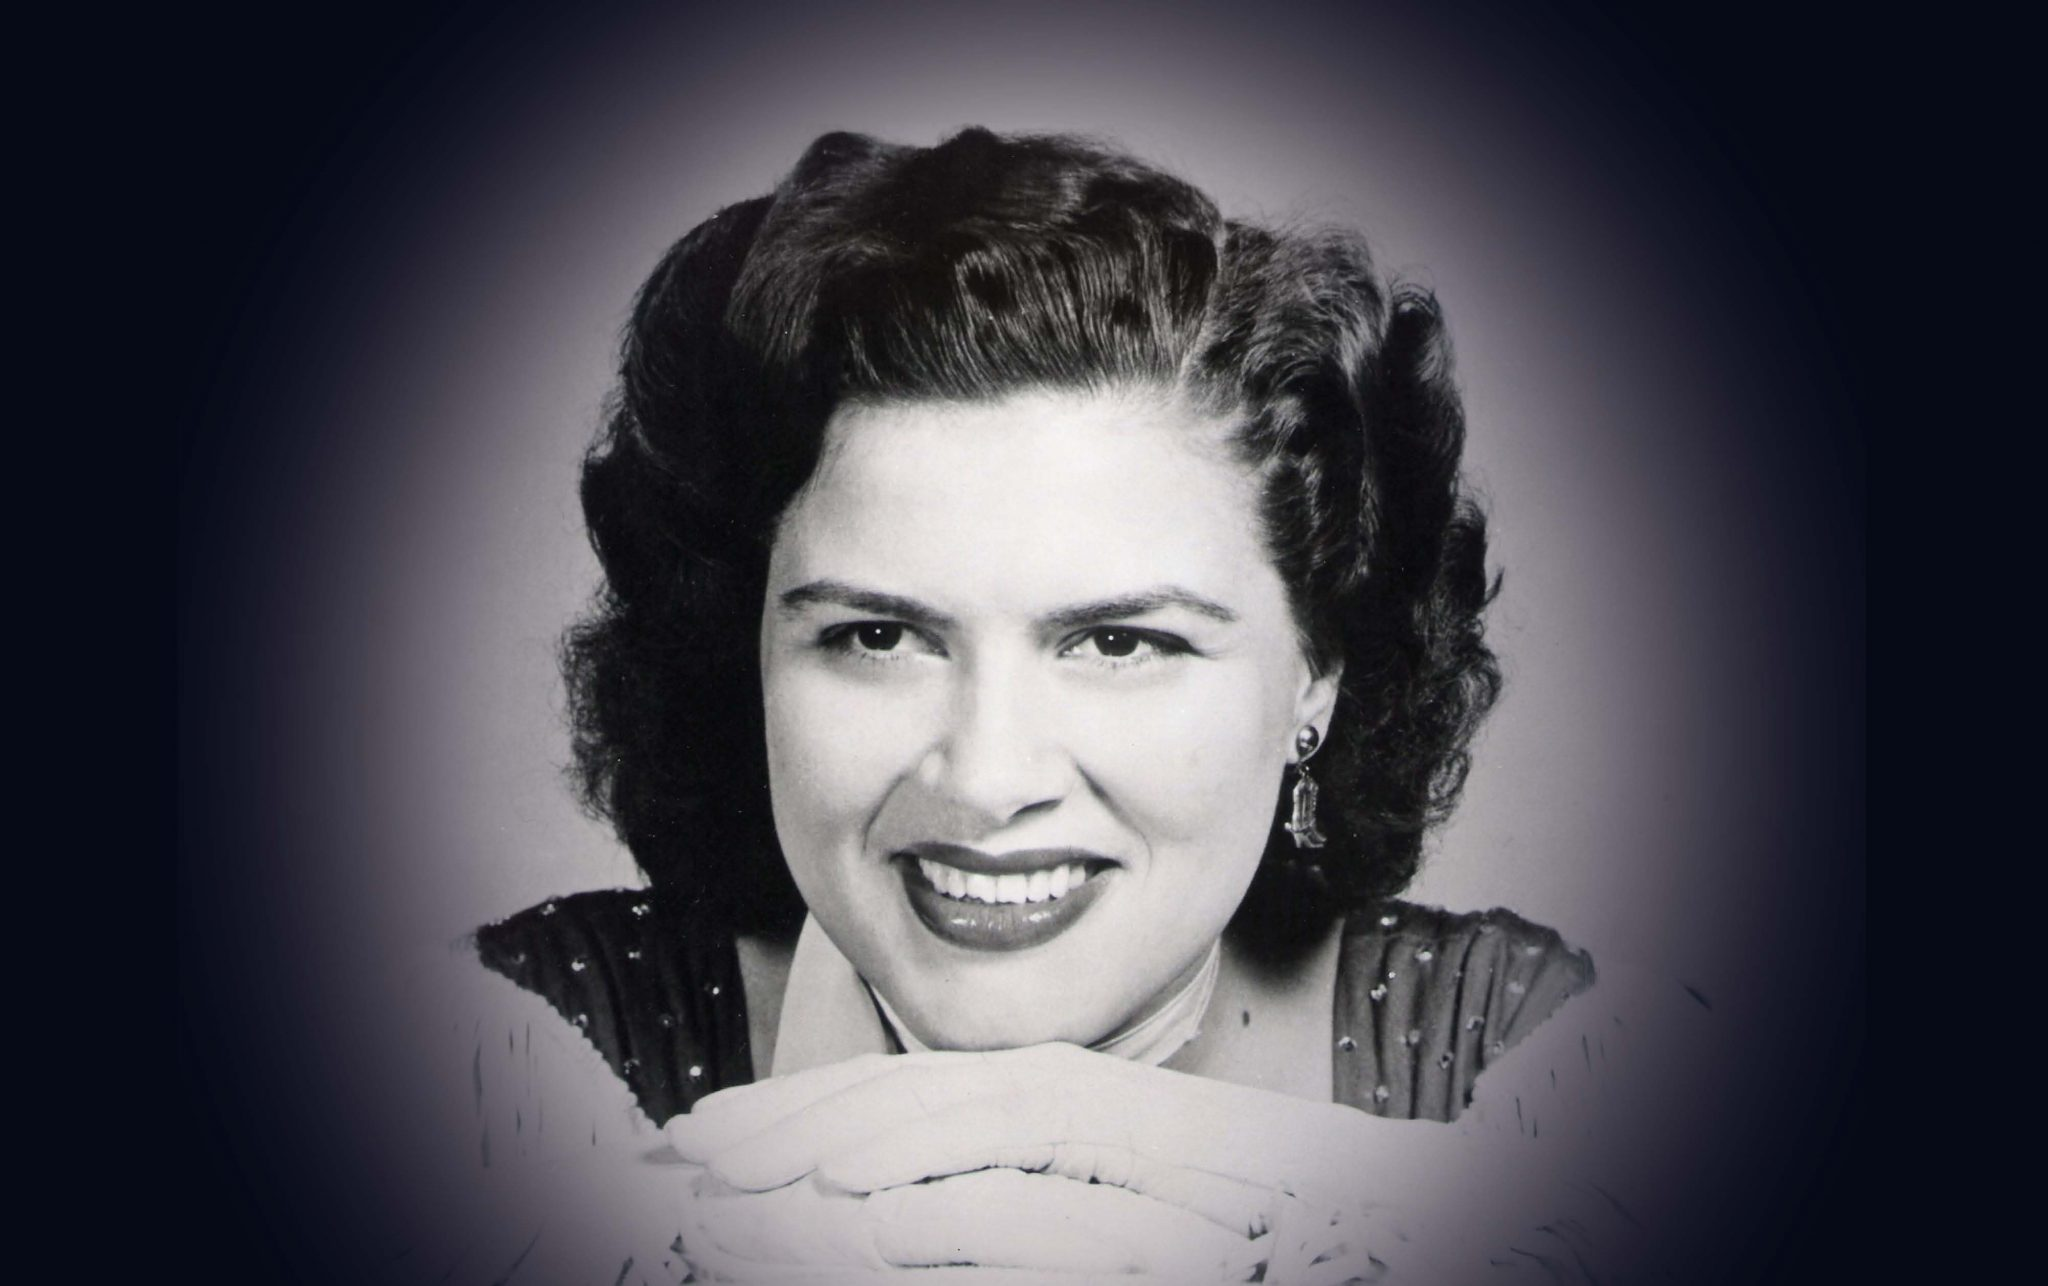 PAST EVENT: A Closer Walk With Patsy Cline – The Barn Dinner Theatre (Greensboro, NC) May 11-25, 2019